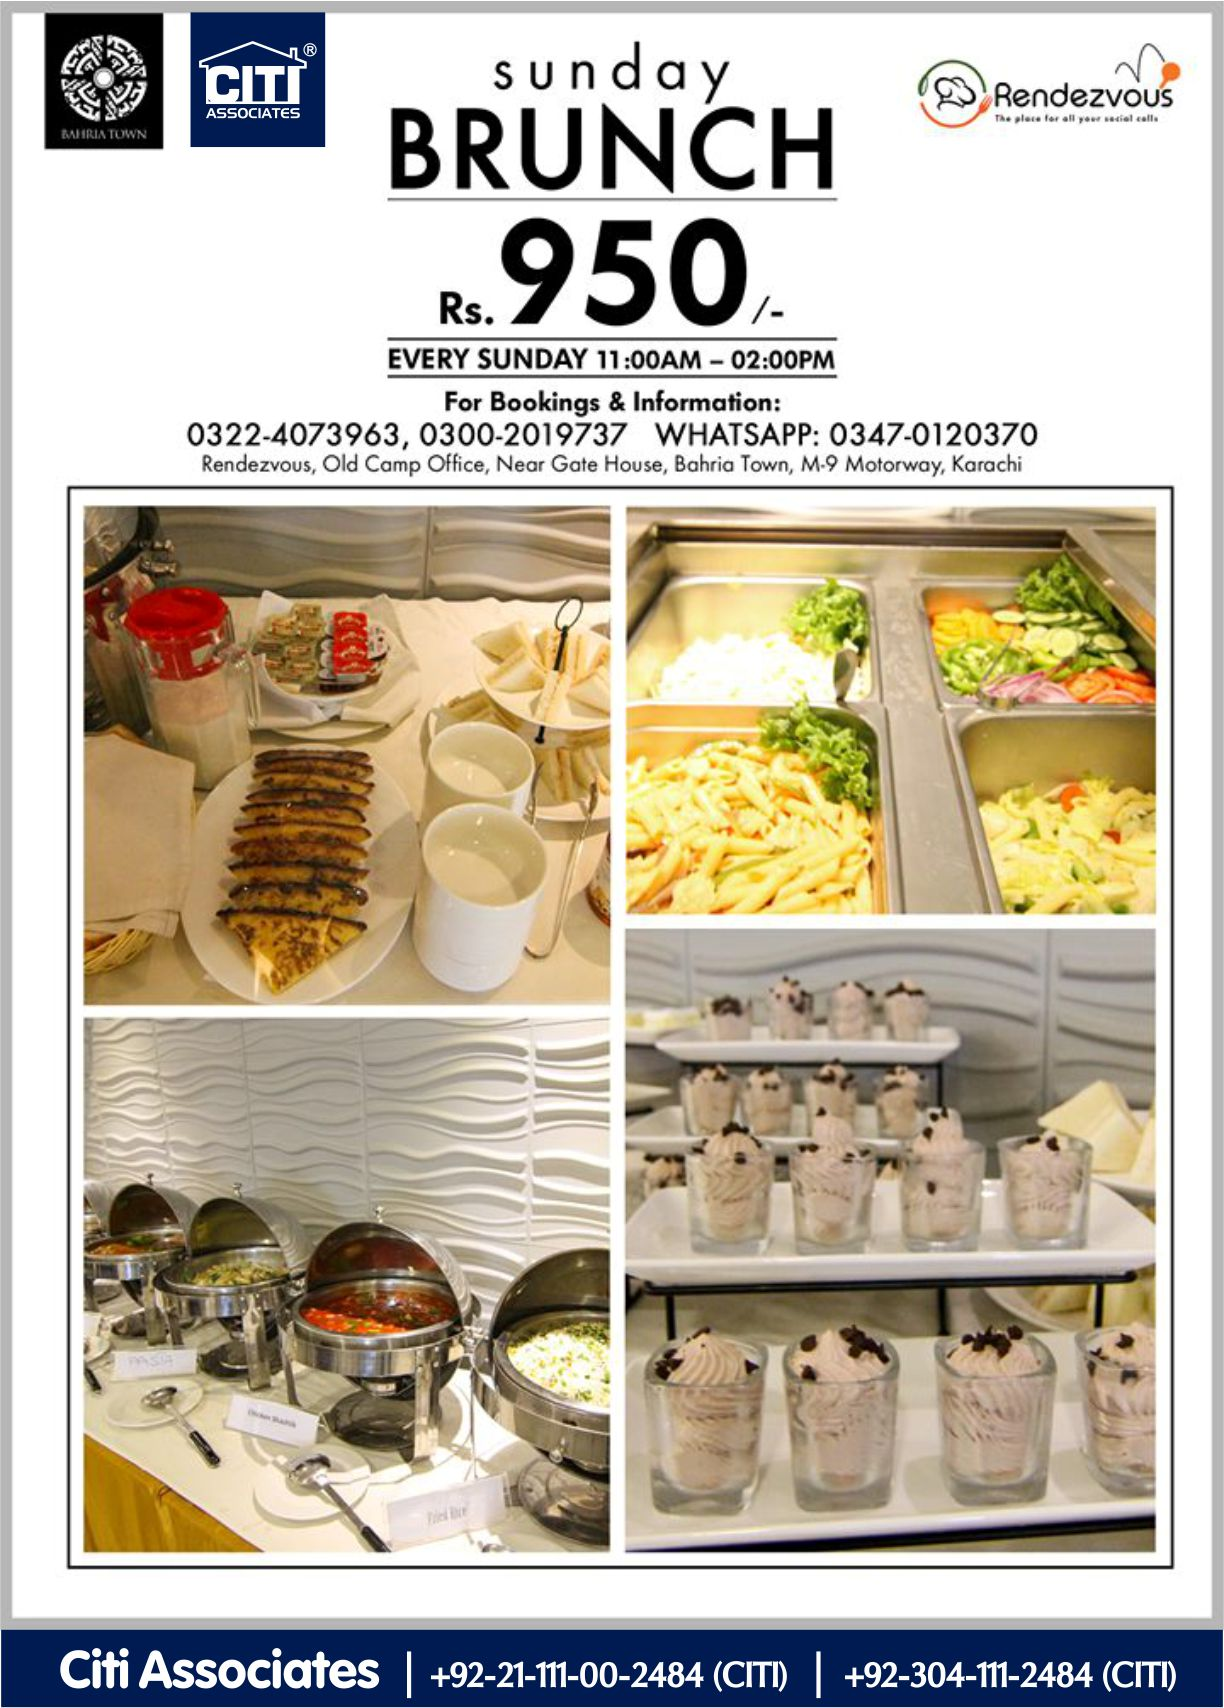 Rendezvous | A Sunday Brunch is Always a Good Idea | Bahria Town Karachi